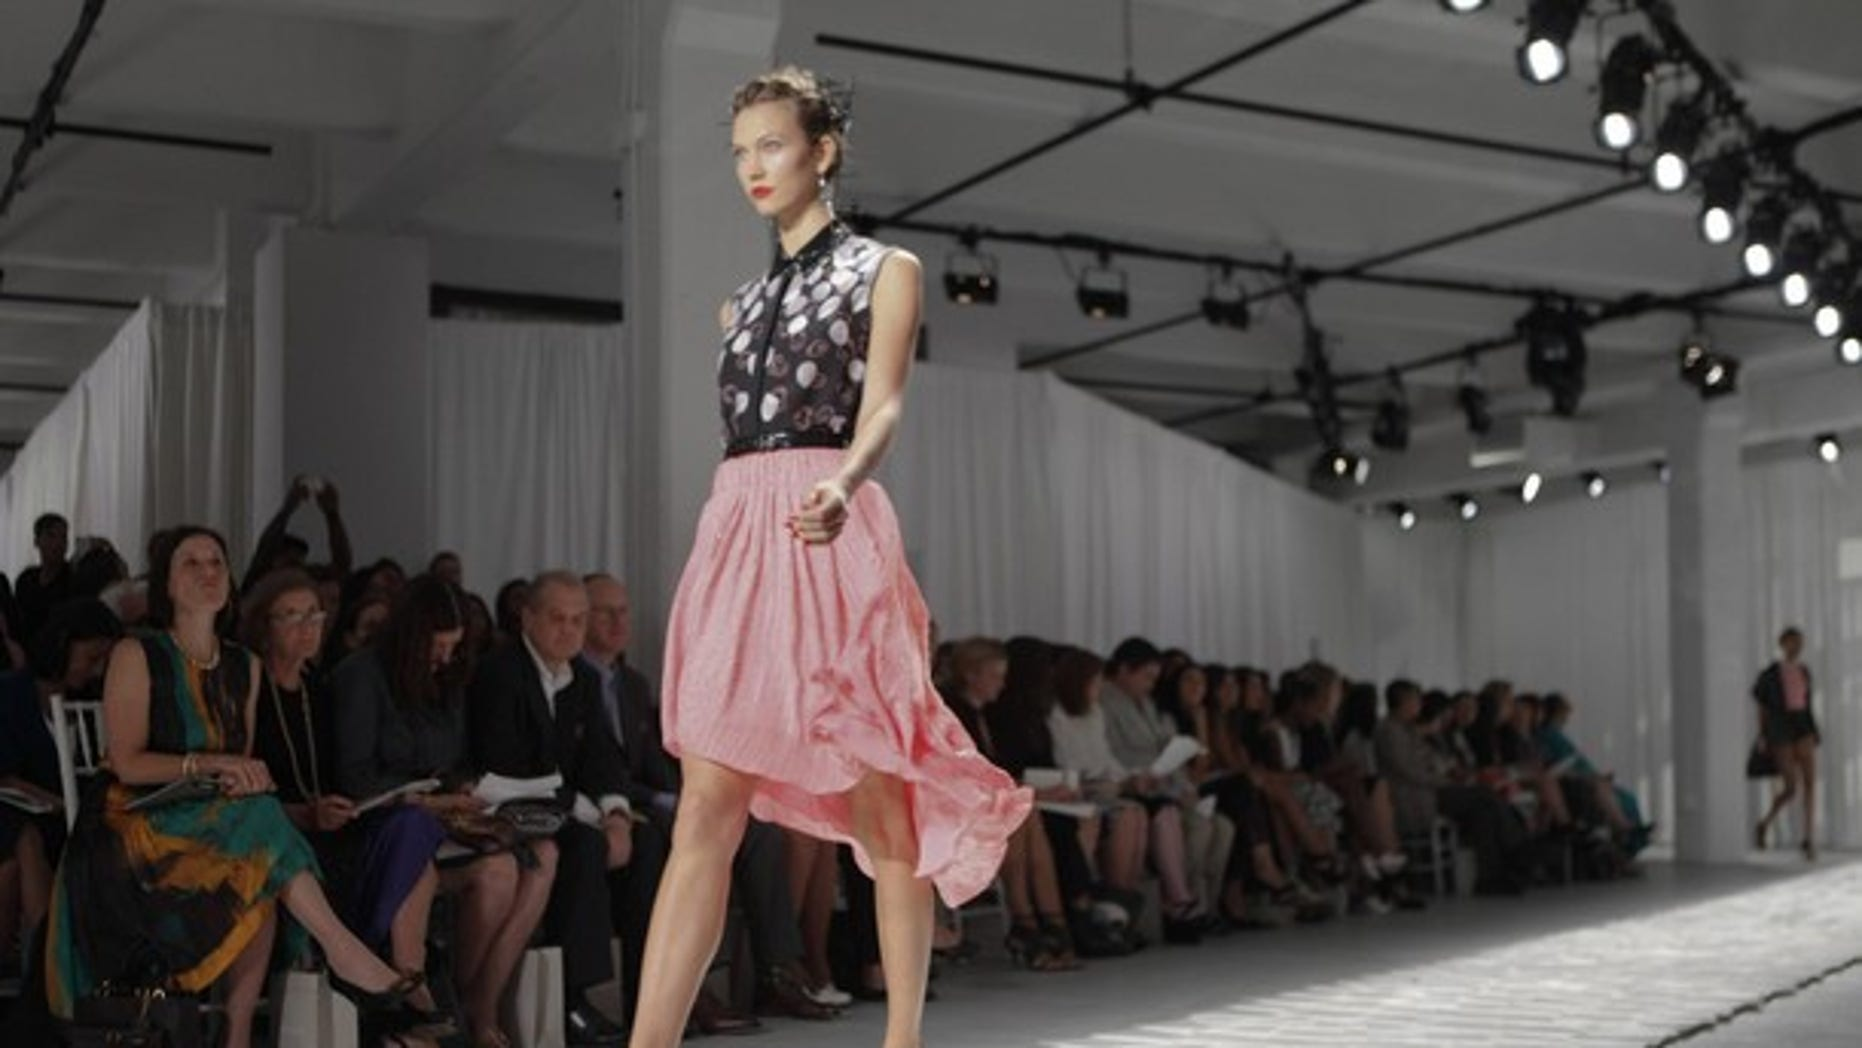 A model walks the runway at the Spring 2012 Jason Wu show. Wu will reportedly design a line for Target. (Reuters)